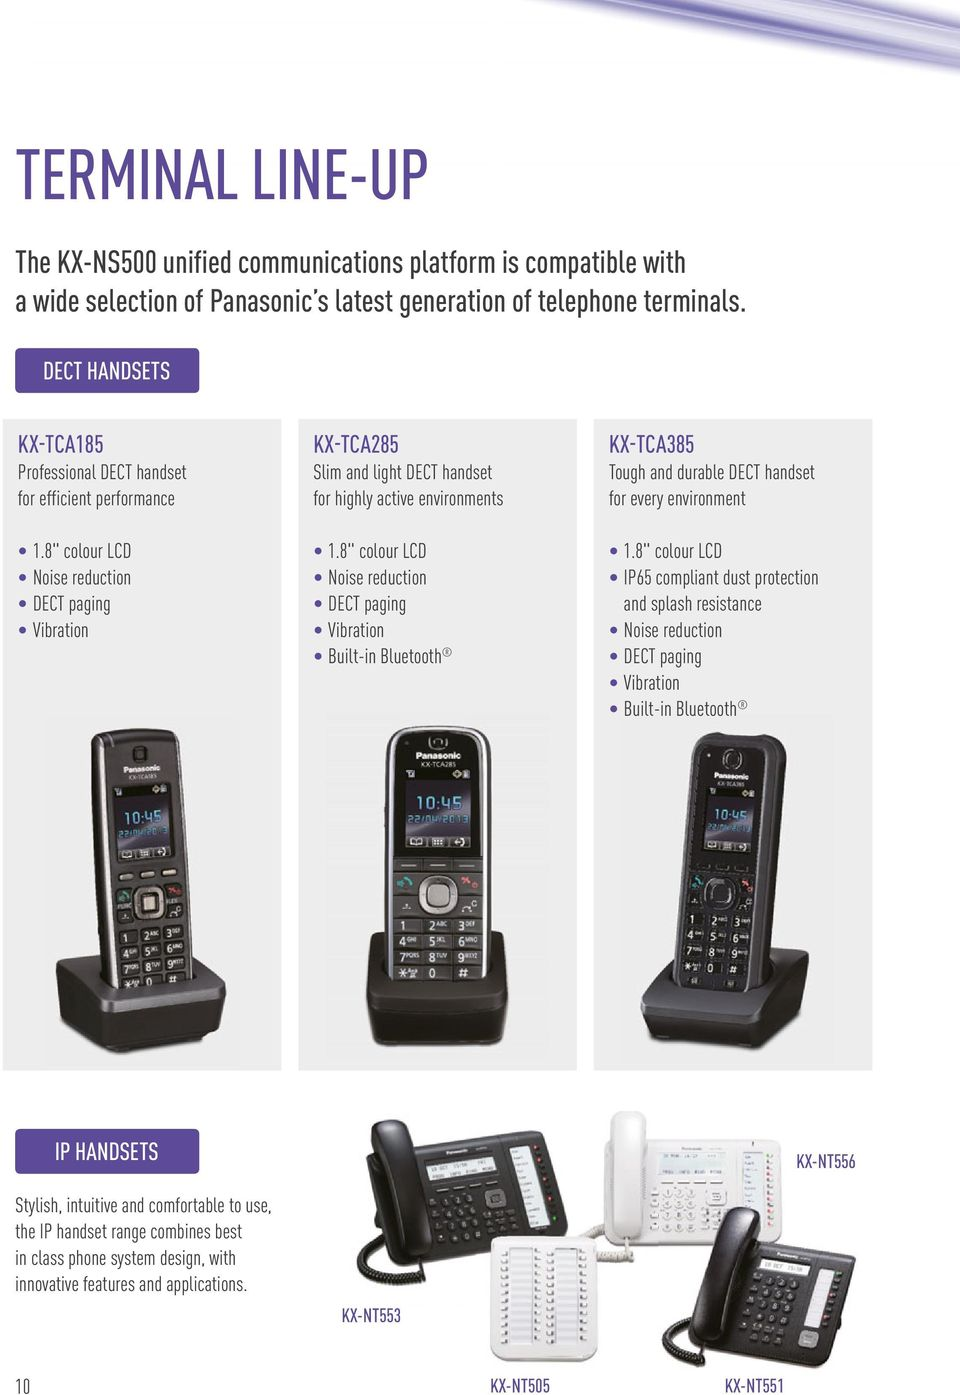 "8"" colour LCD Noise reduction DECT paging Vibration KX-TCA285 Slim and light DECT handset for highly active environments 1."